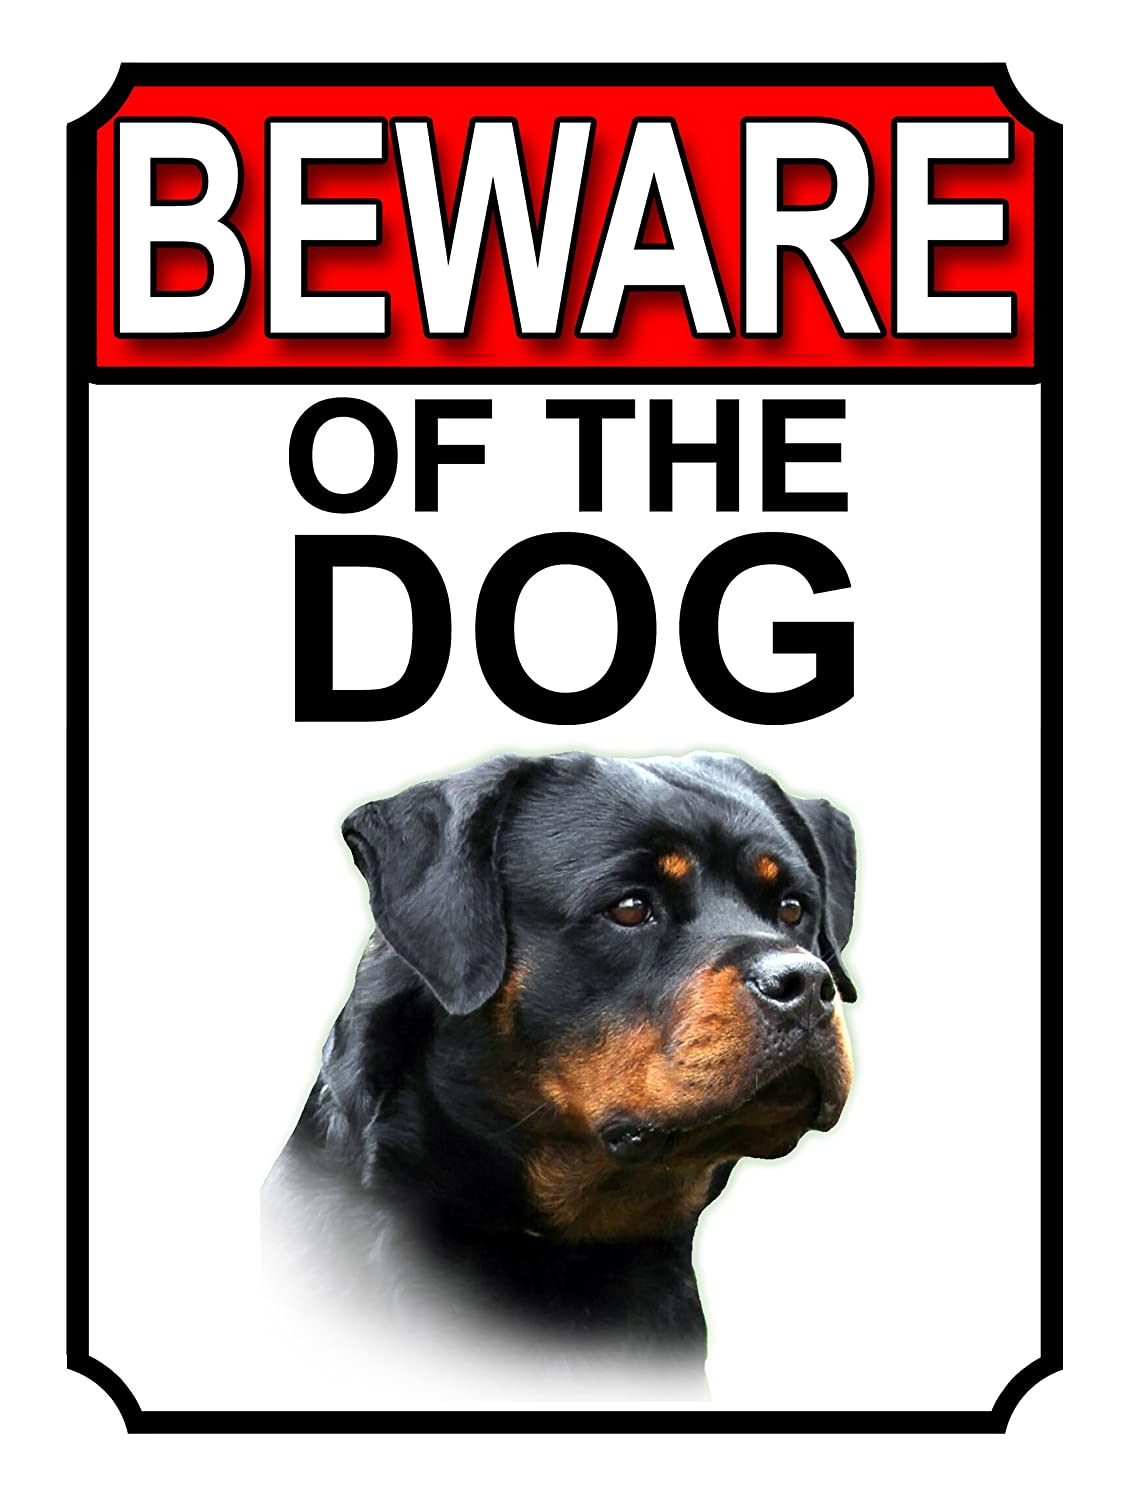 SHAWPRINT BEWARE OF THE DOG METAL GATE SIGN ROTTWEILER 200MM X 150MM (1147H1)